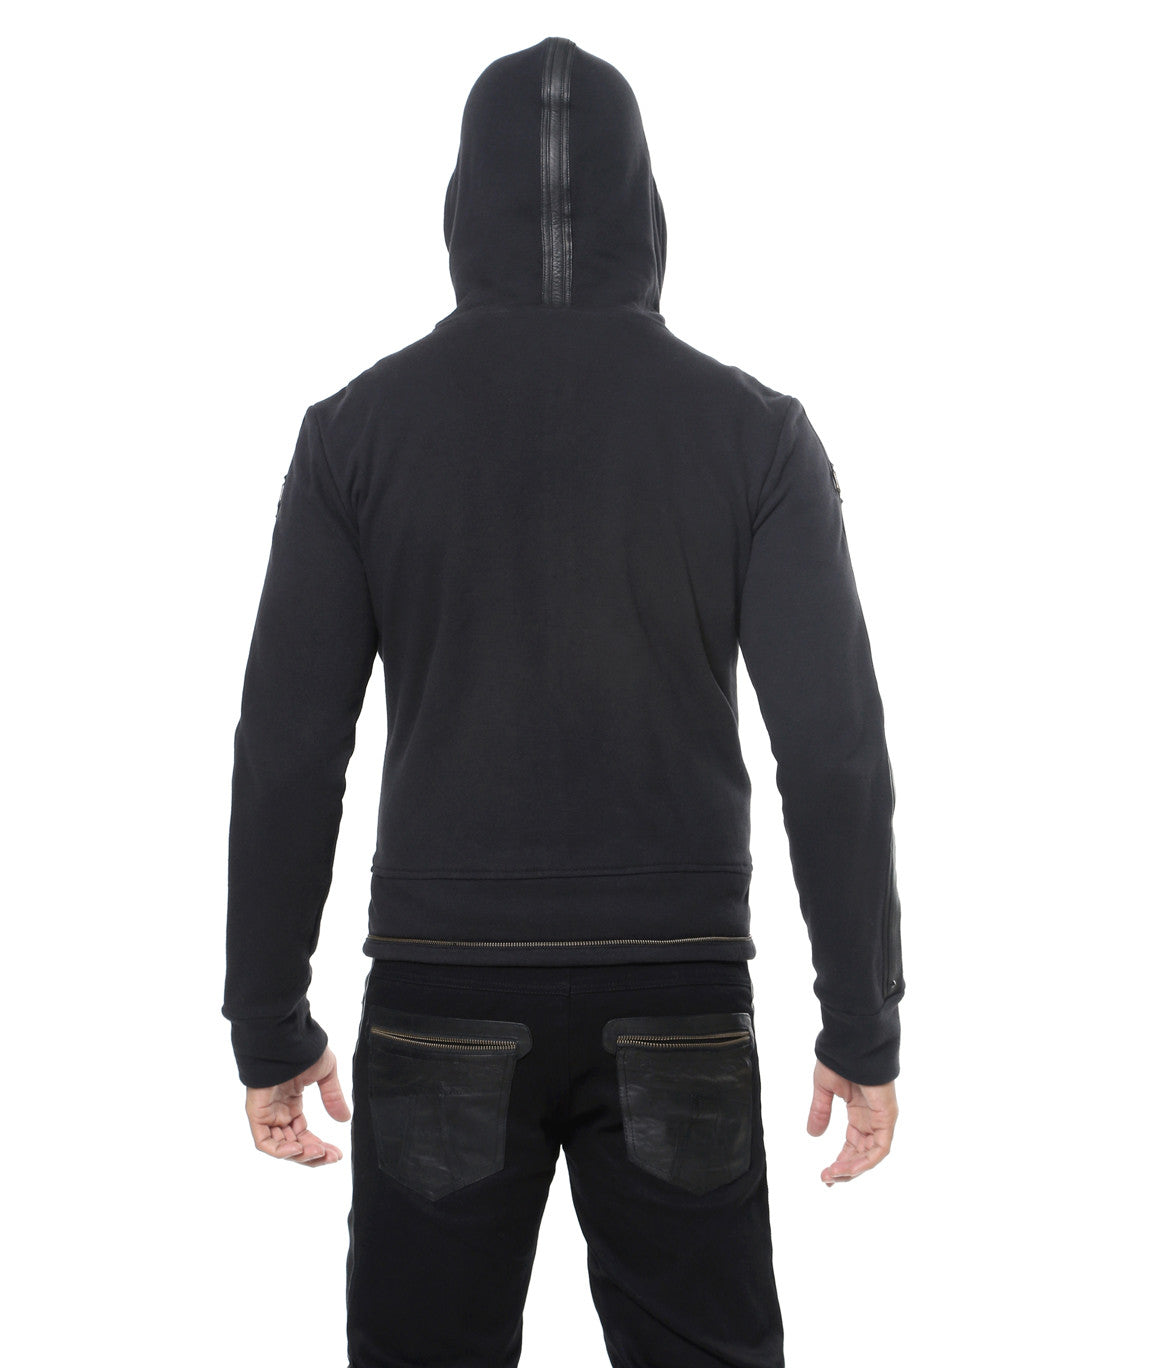 Elk Hoody - Terry Cotton + Leather